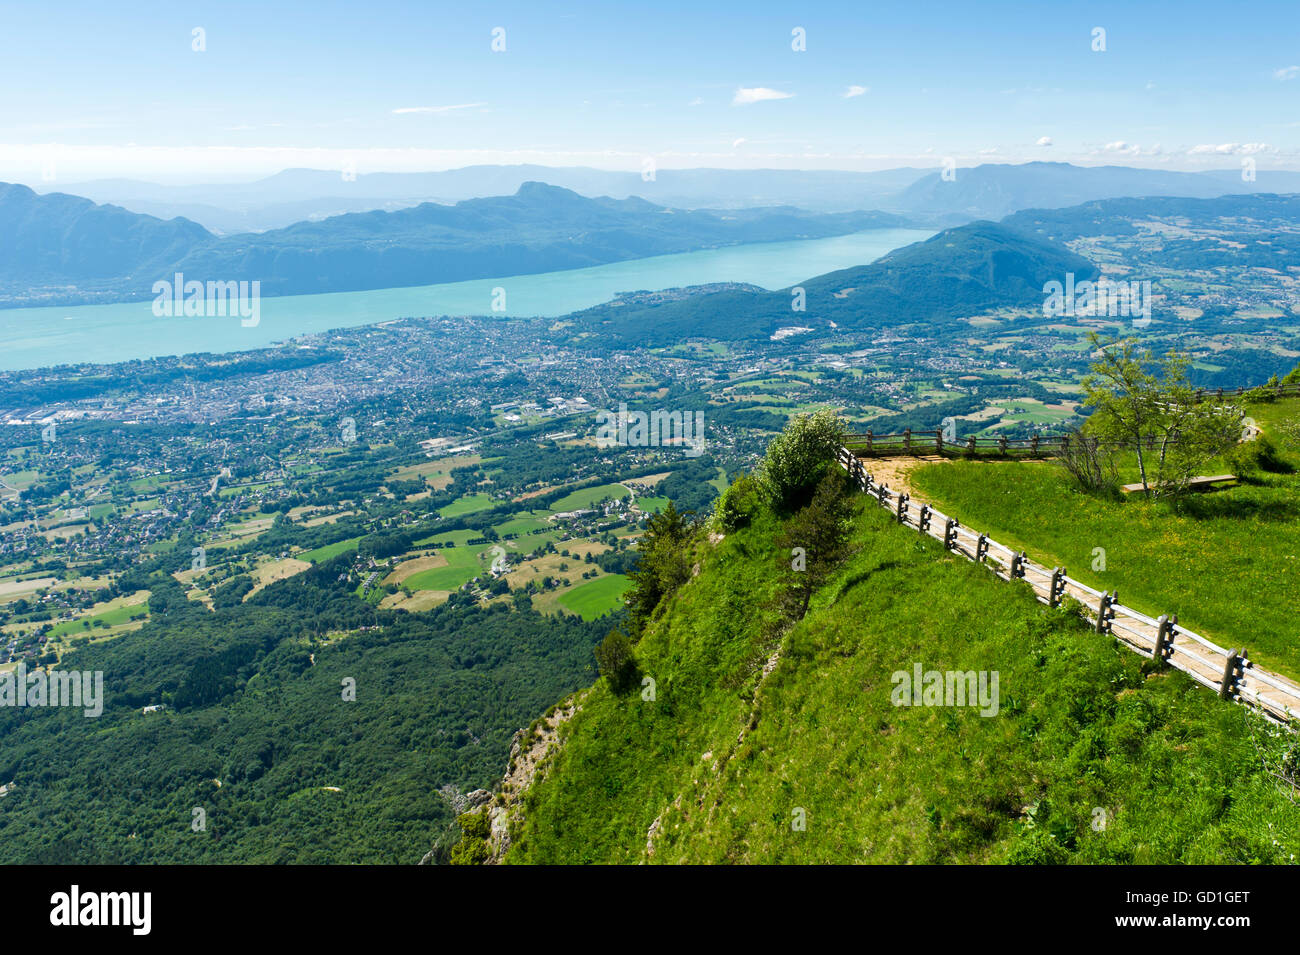 aix les bains and lac du bourget from the viewpoint on mont revard stock photo royalty free. Black Bedroom Furniture Sets. Home Design Ideas